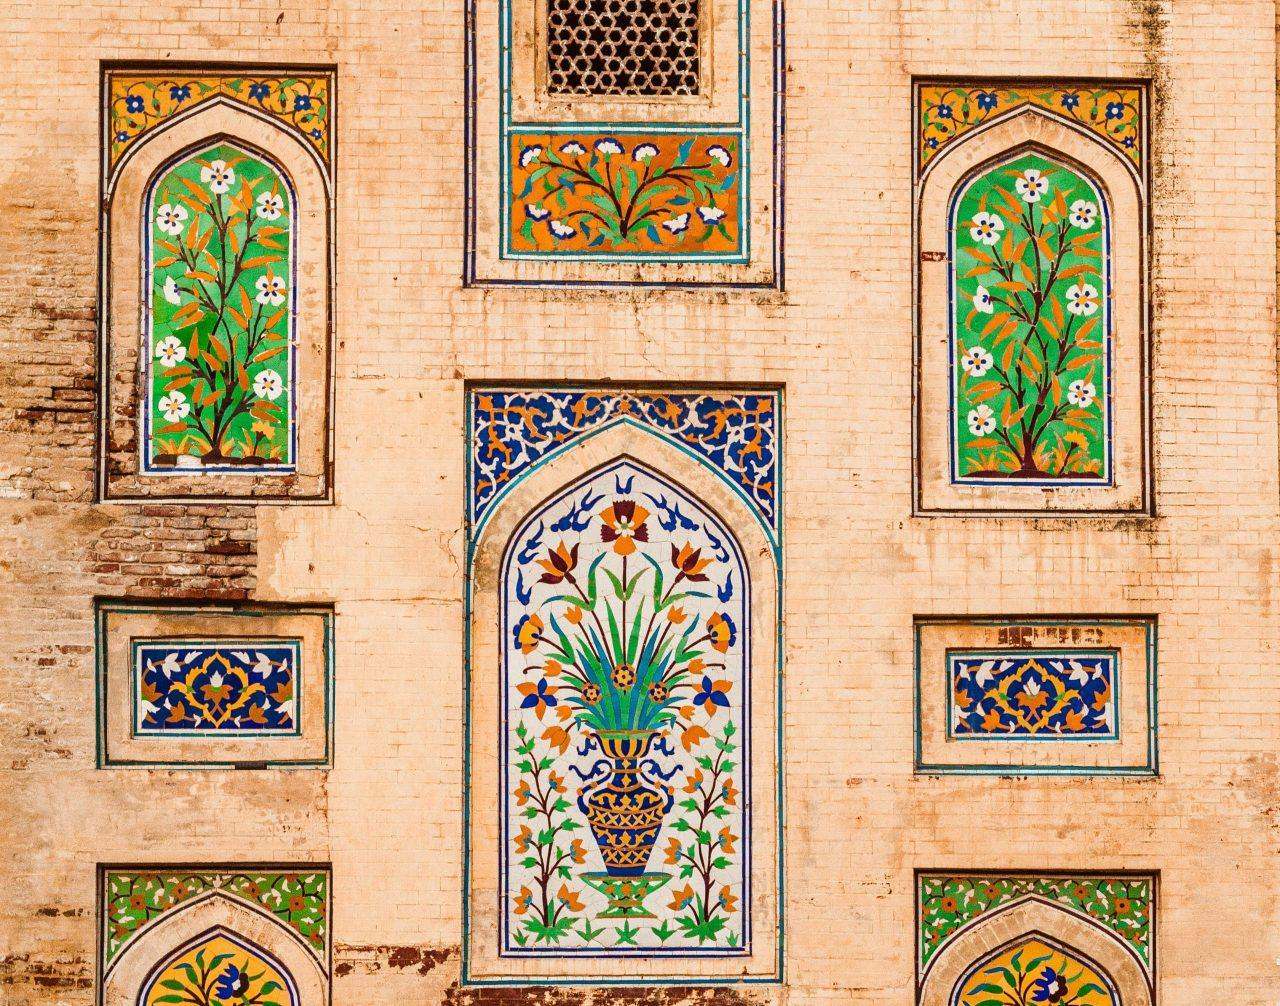 Exterior wall inset with colorful mosaics